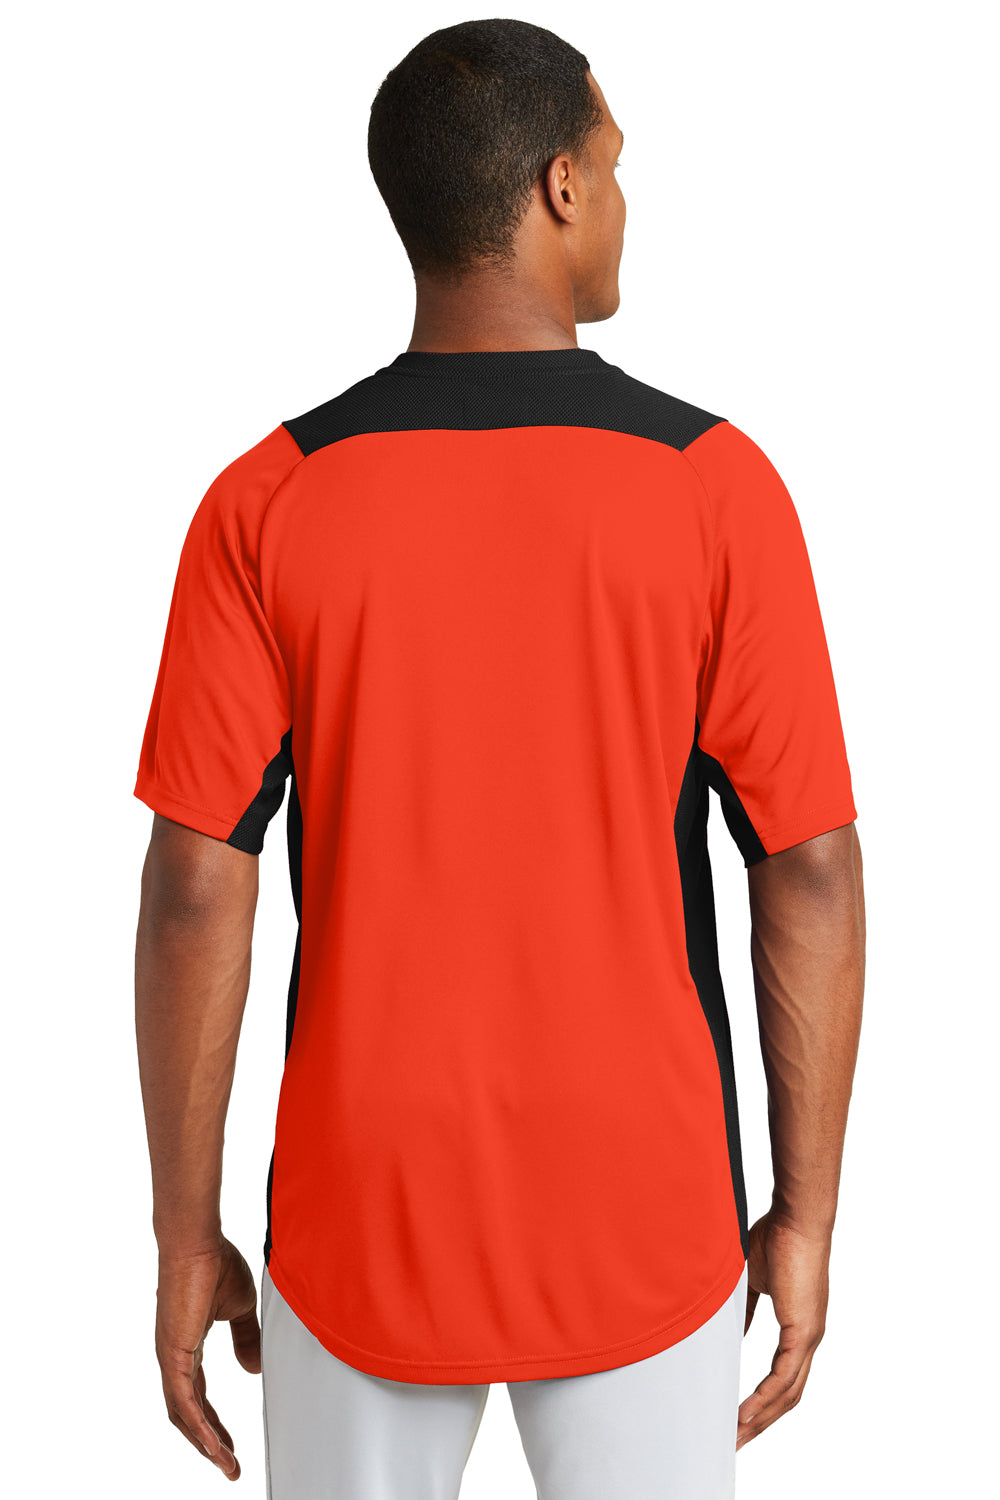 New Era NEA221 Mens Diamond Era Moisture Wicking Short Sleeve Jersey Orange/Black Back